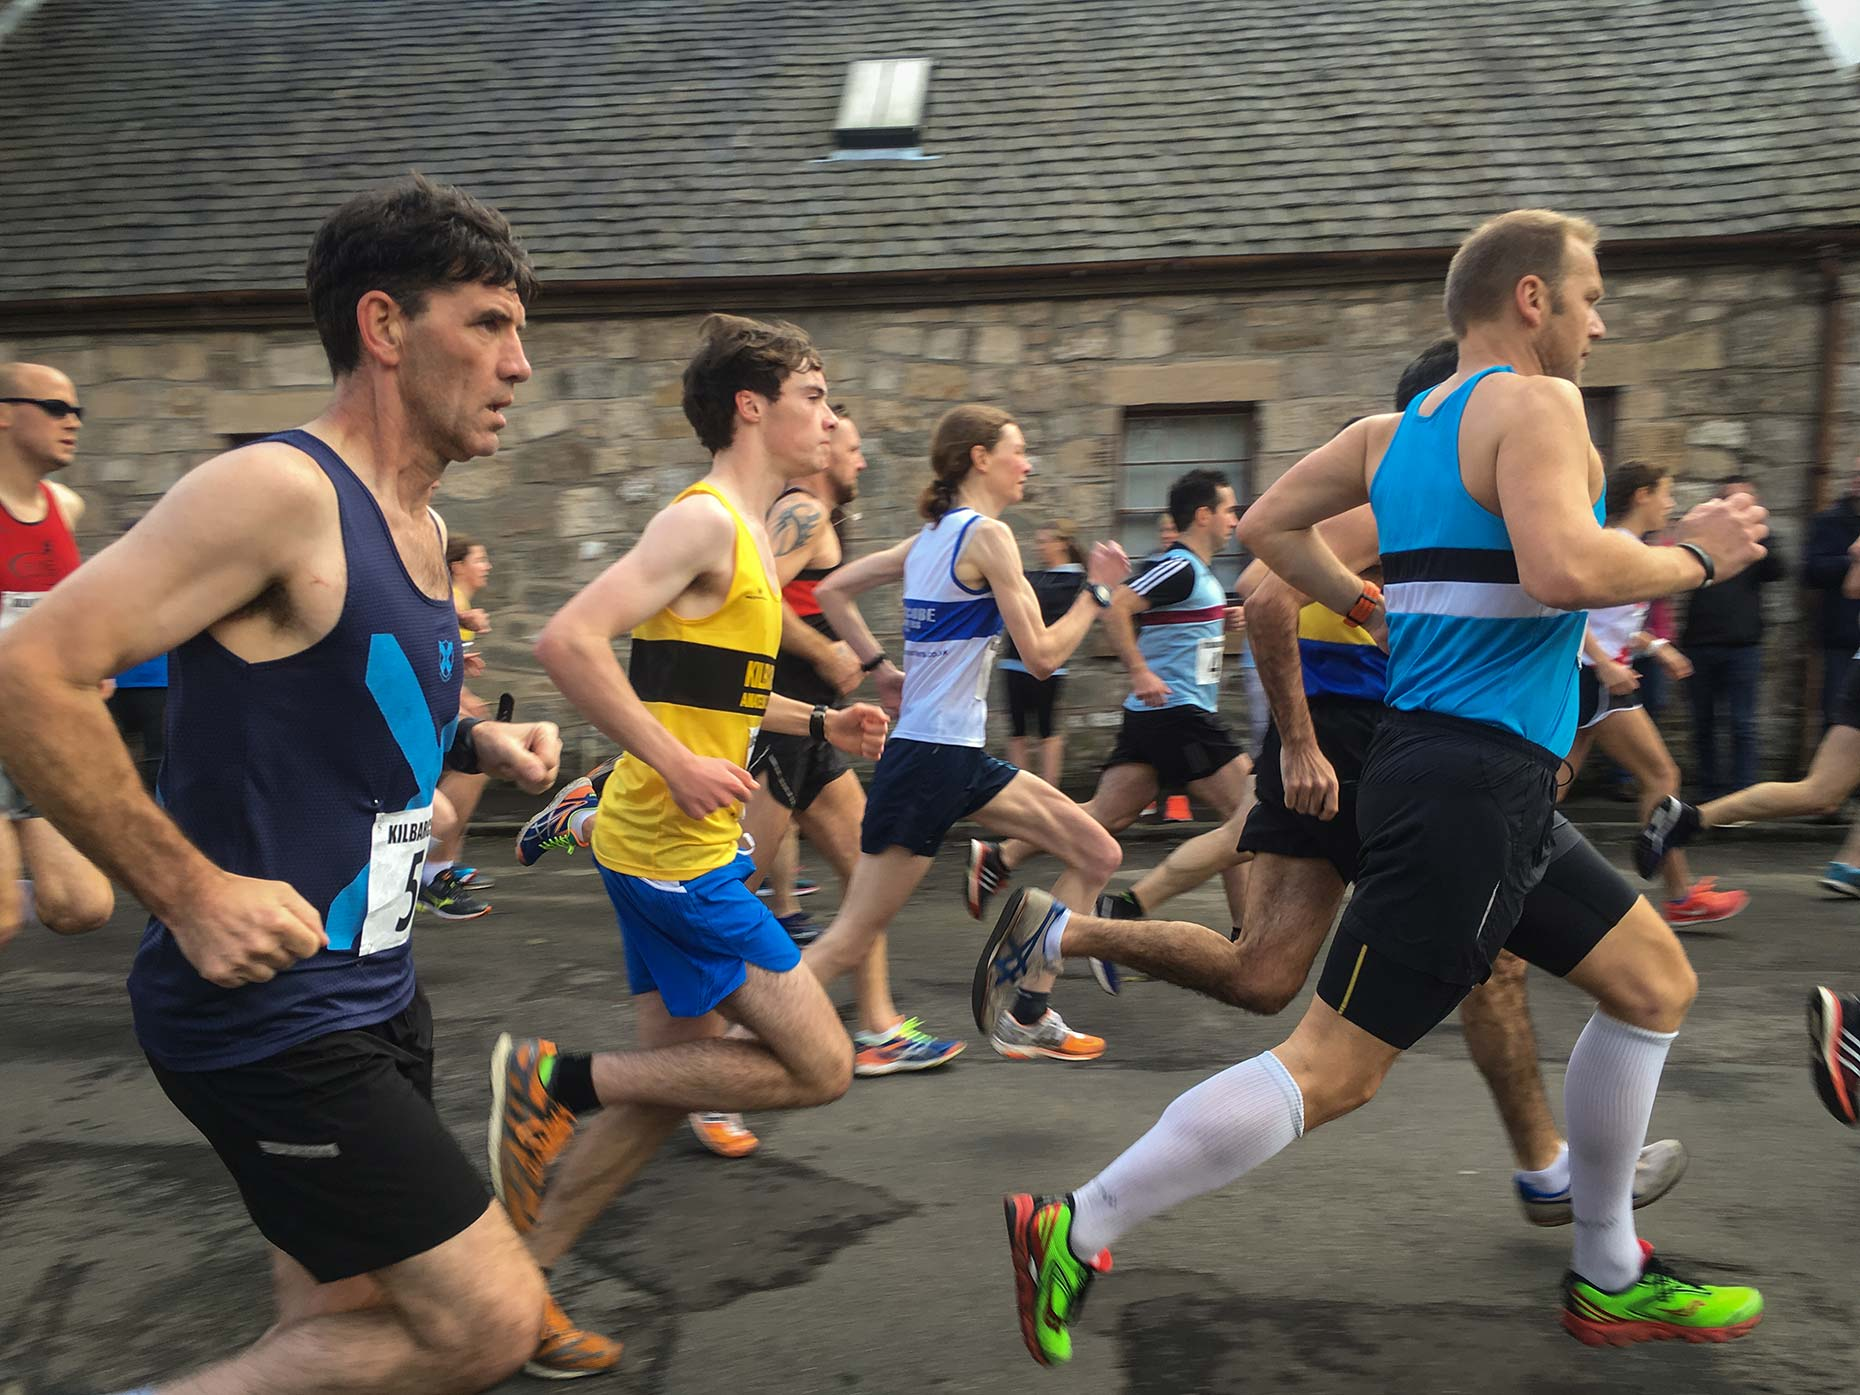 Running club athletes by Scotland photographer